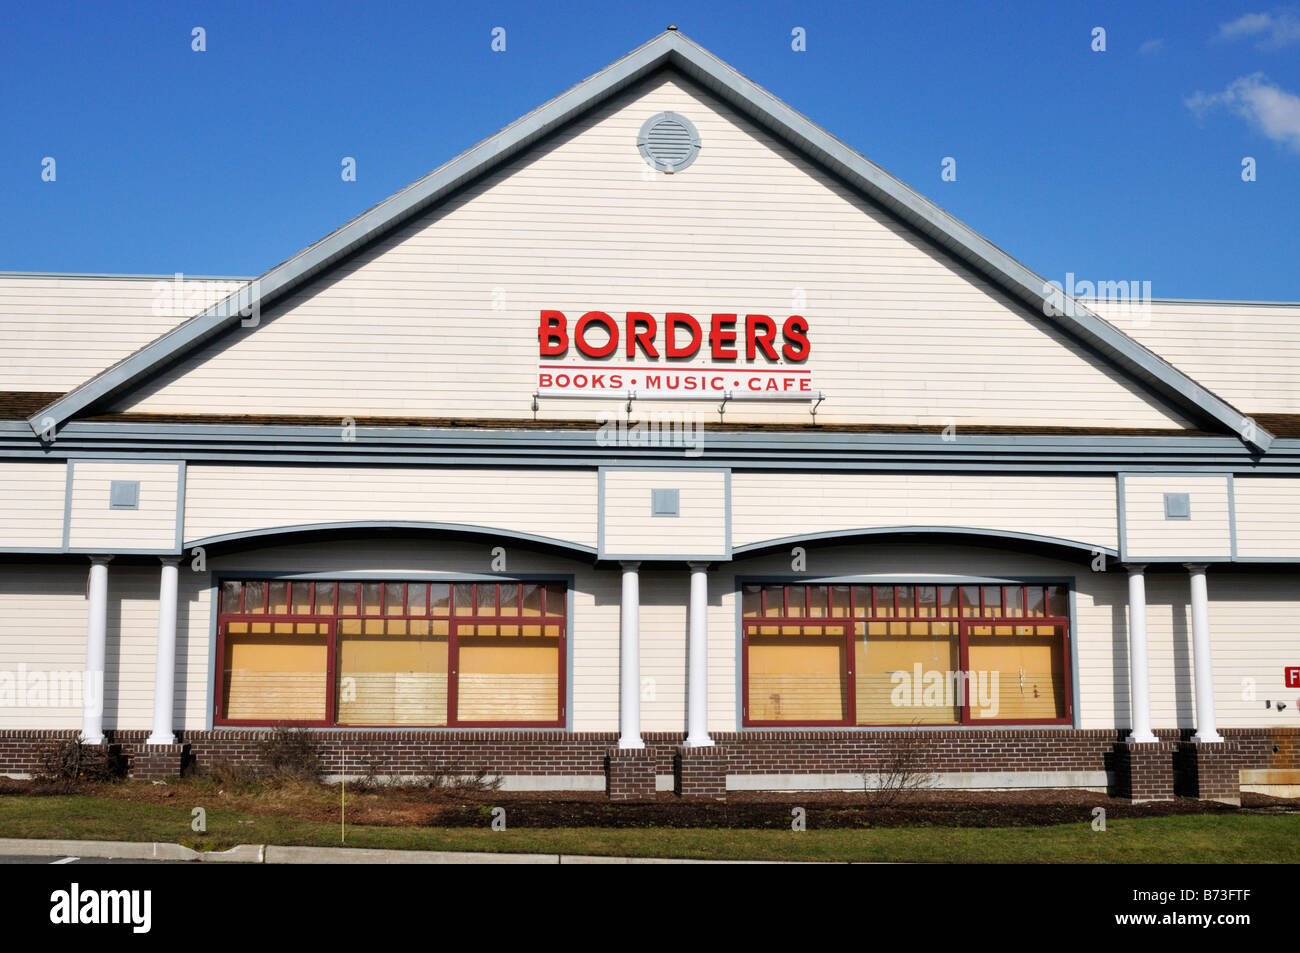 Exterior facade of Borders Book Store with sign and logo, USA. - Stock Image